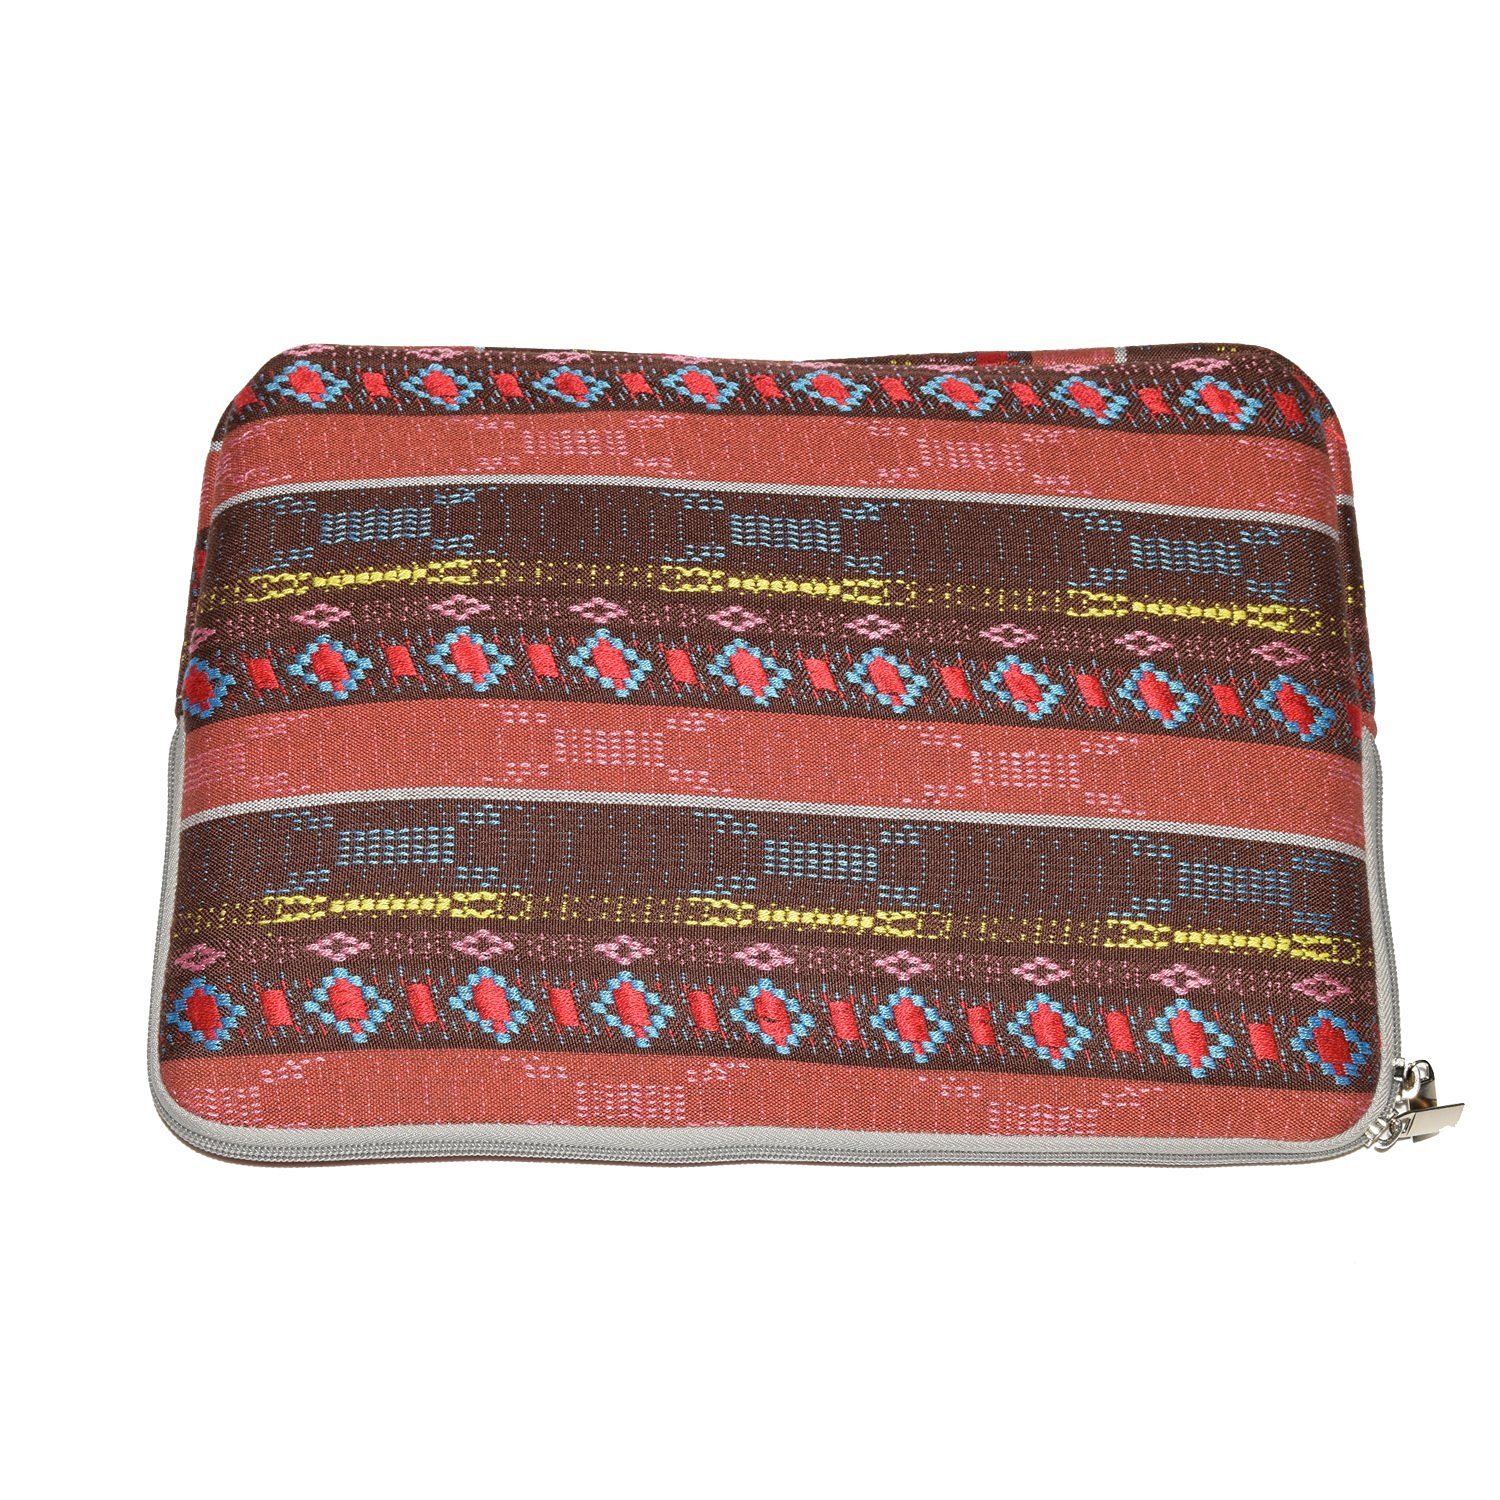 """Bohemian Laptop Case - CASETIME Bohemian Style Canvas Fabric Laptop Sleeve 13-13.3 Inch Laptop Case Cover Bag for 12.9 iPad Pro/MacBook Air/MacBook Pro/Notebook (13""""--No.19 Coffee)"""